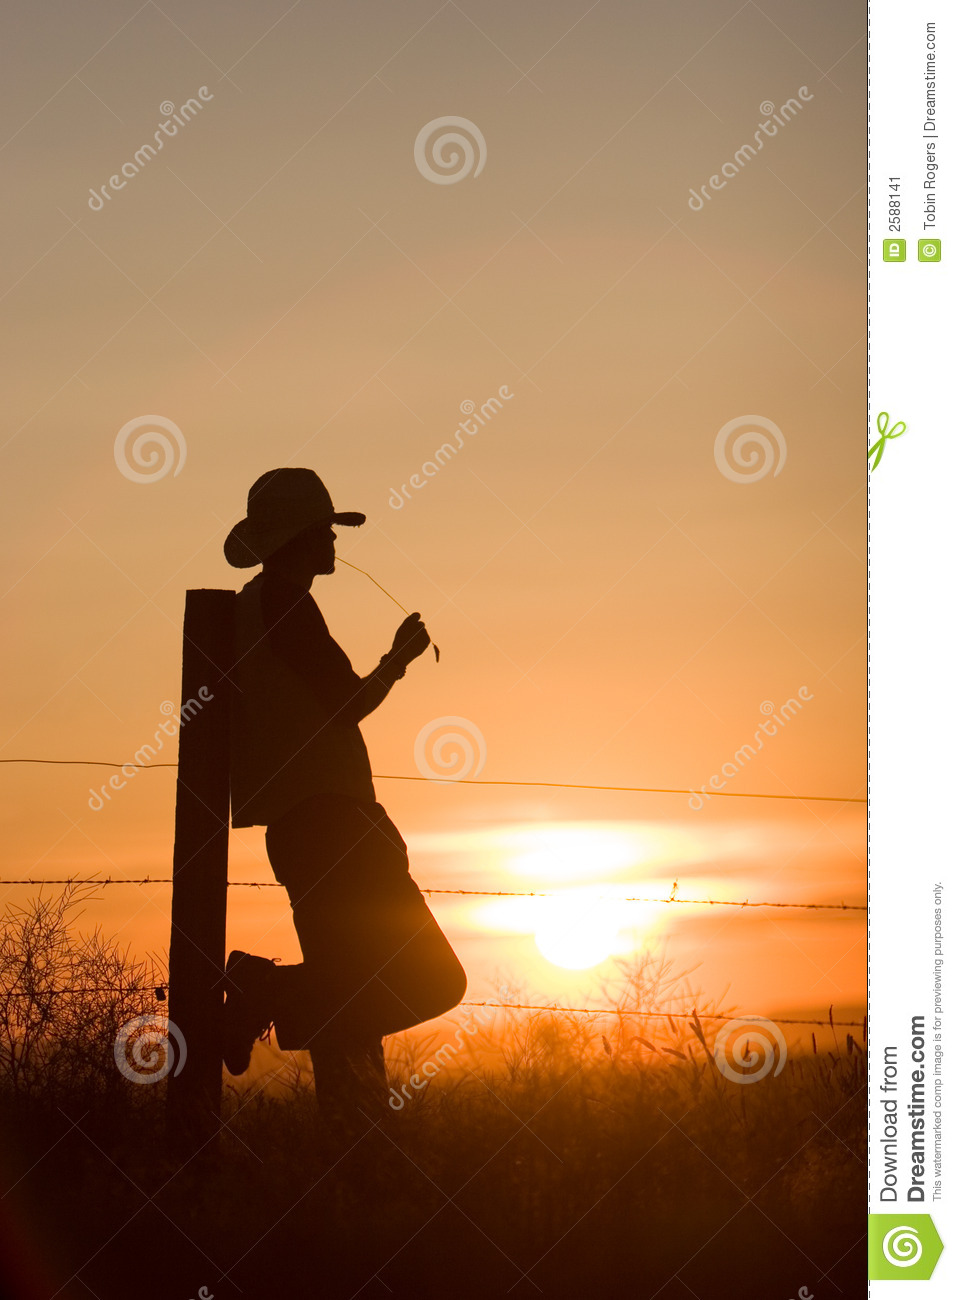 Silhouette of cowboy leaning against fence post watching the sun set.